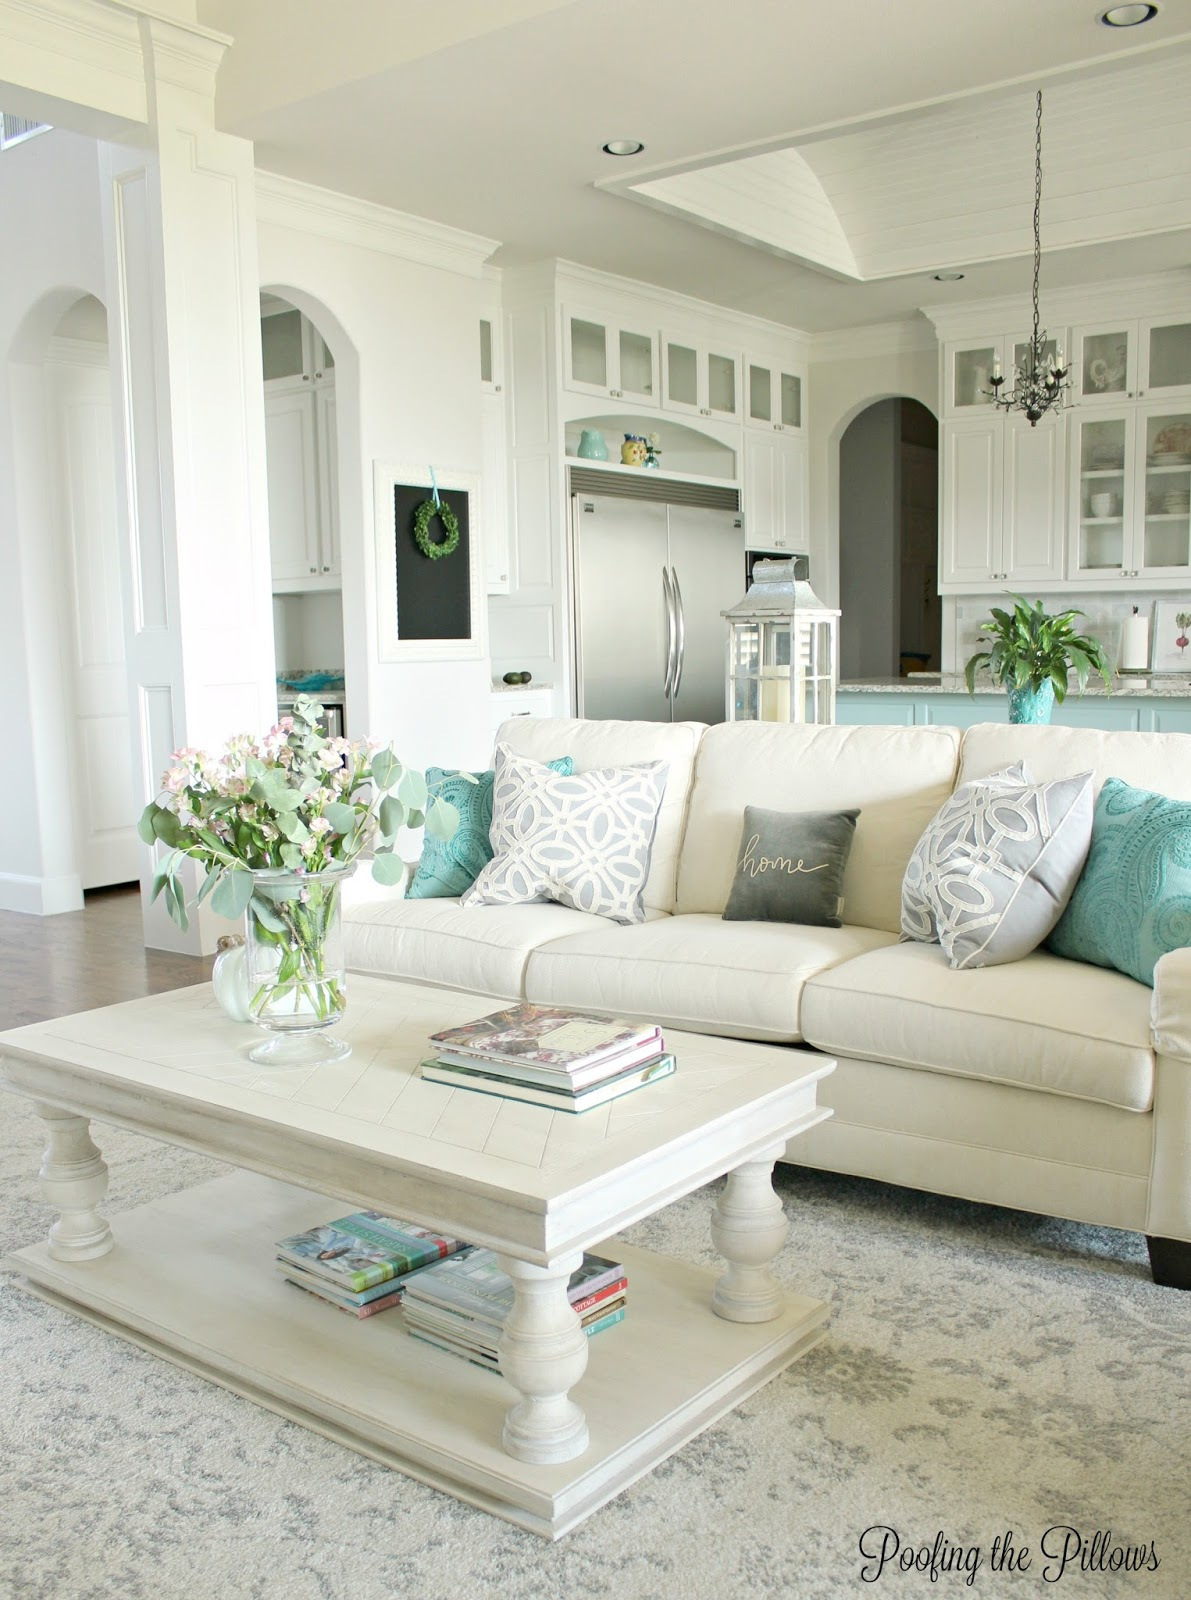 Home Tour | Poofing the Pillows